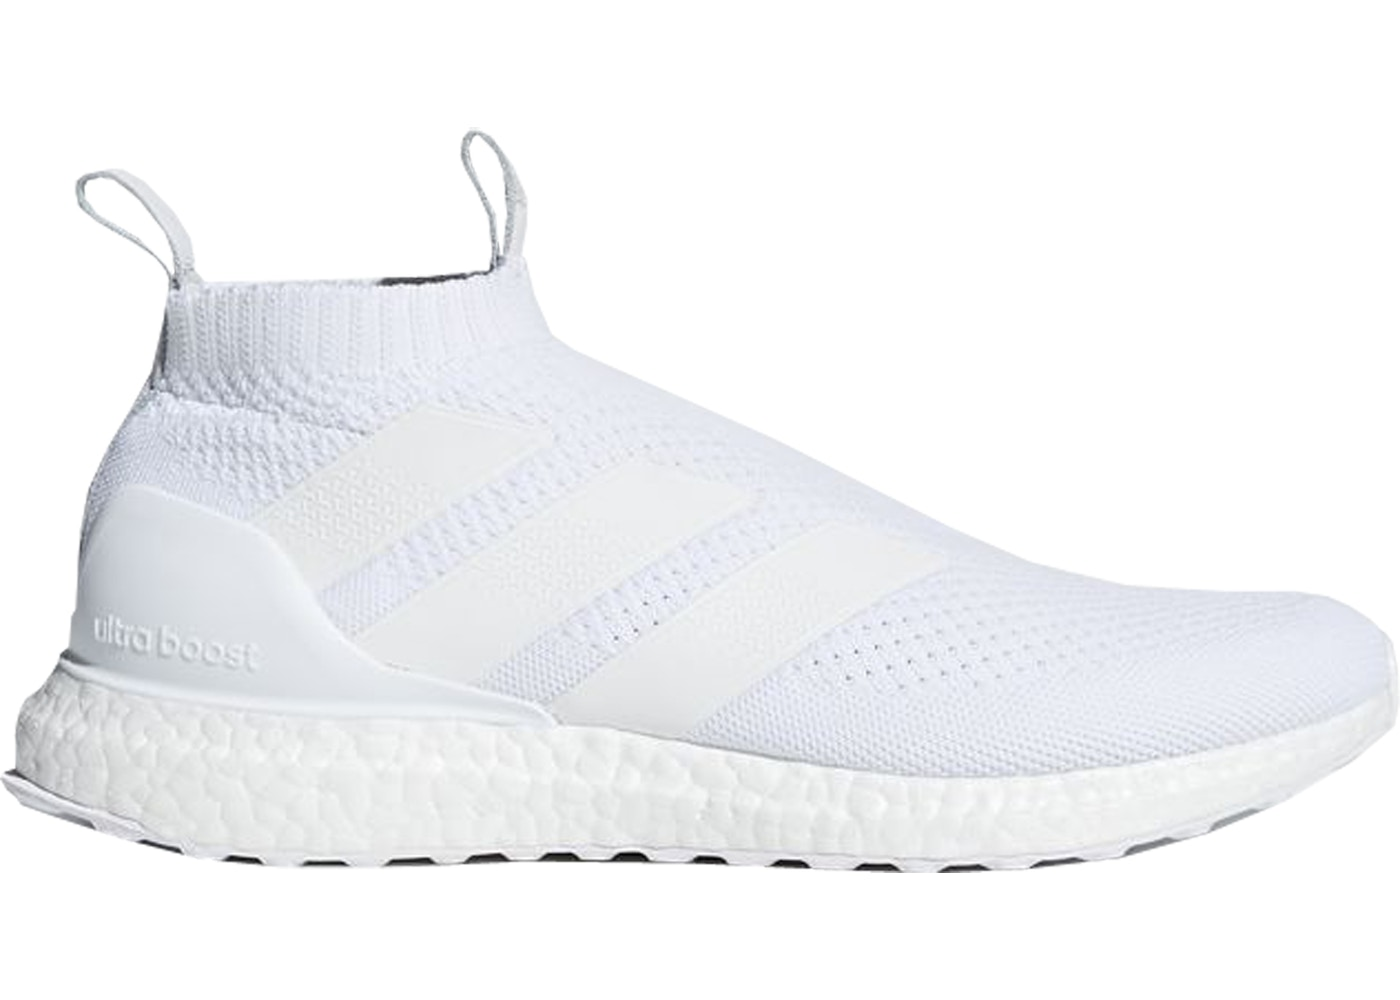 best service 39991 73cf5 ... adidas ACE 16+ Ultra Boost Triple White - AC7750 ...